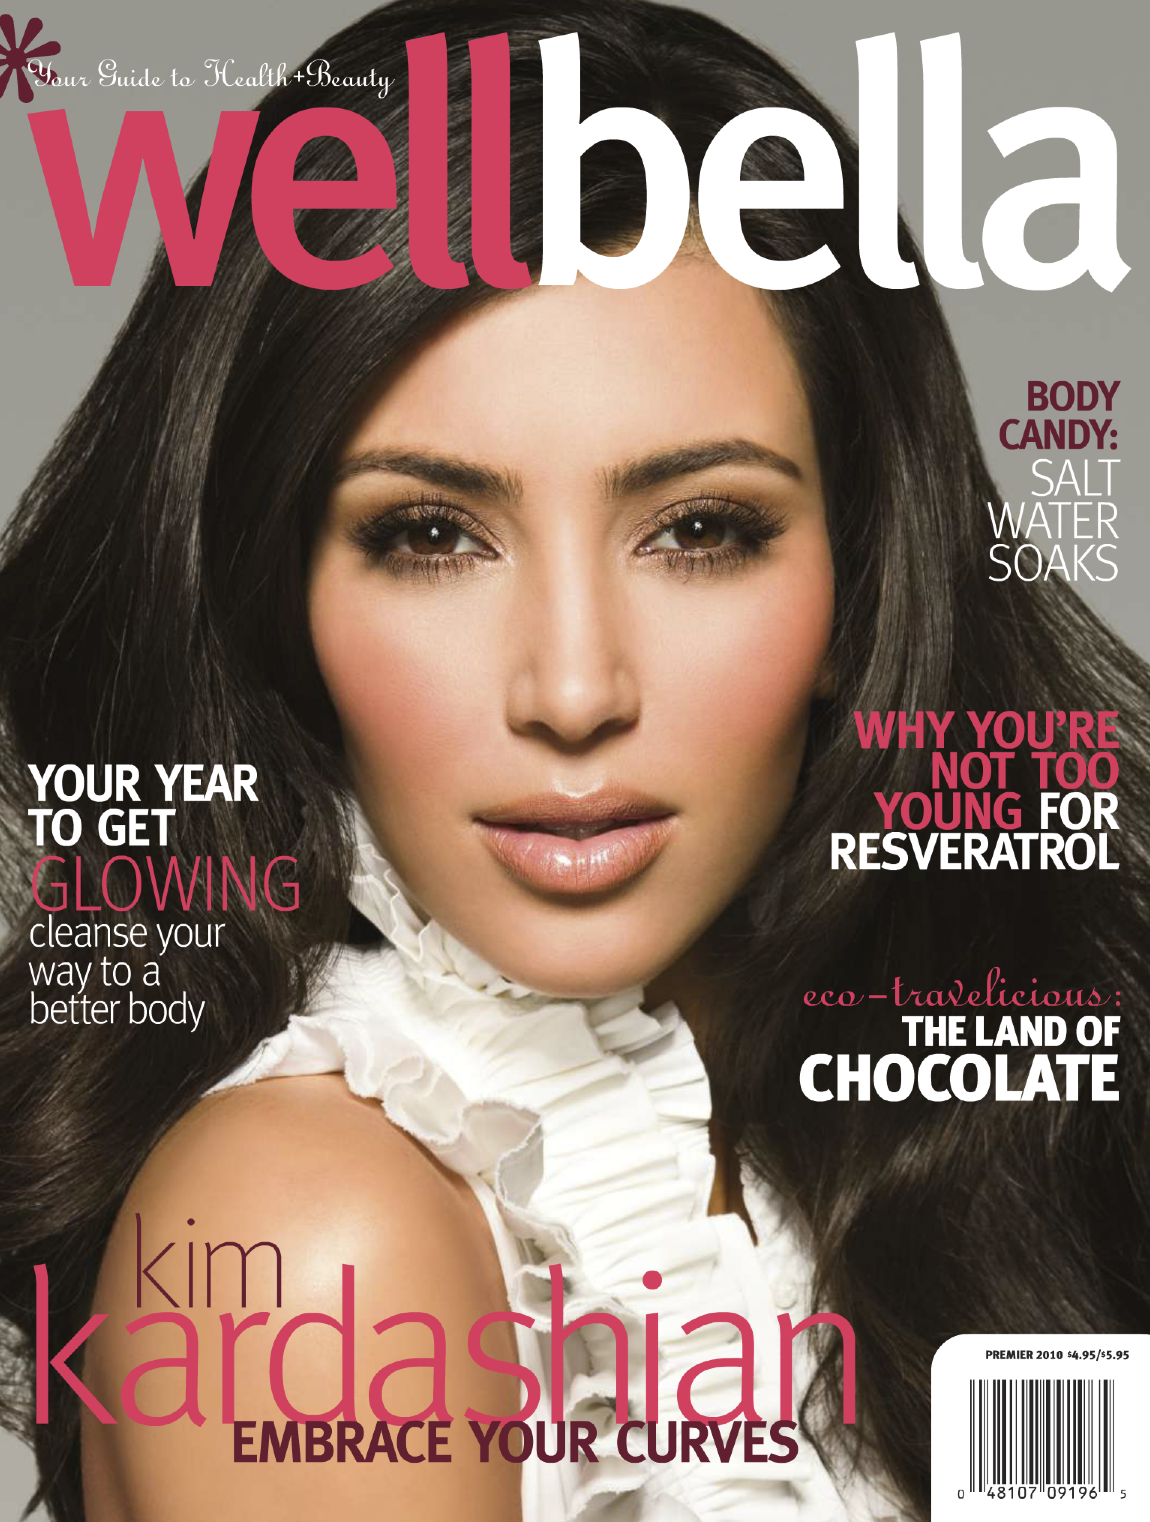 WELLBELLA • JAN. 2010